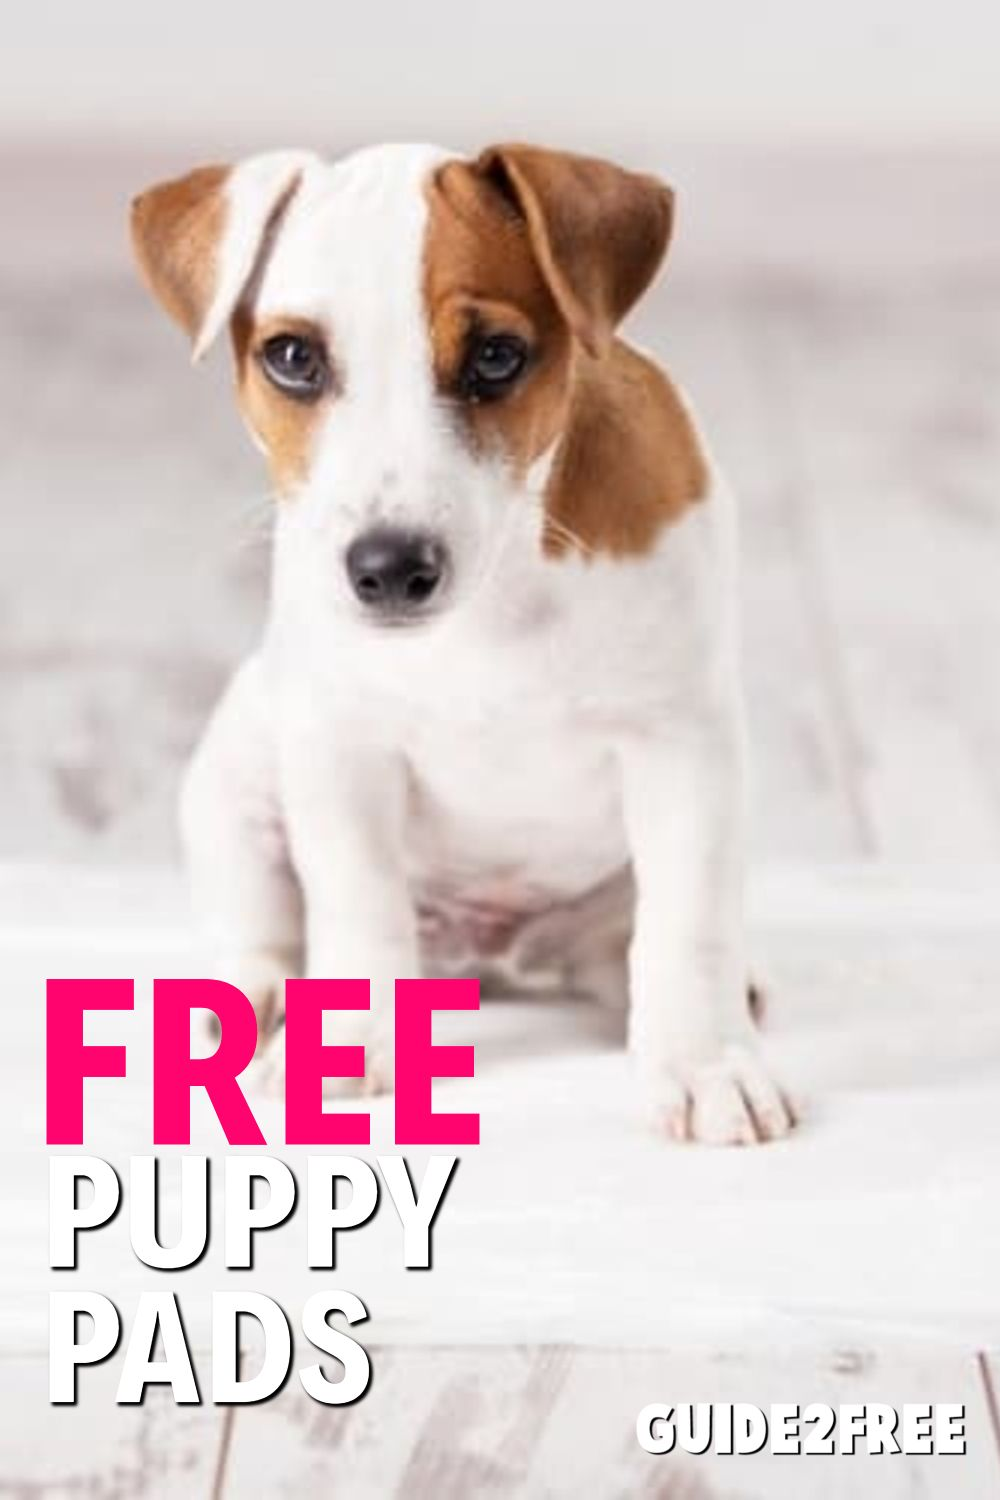 Free Puppy Pad Sample Free Puppies Puppy Pads Puppies